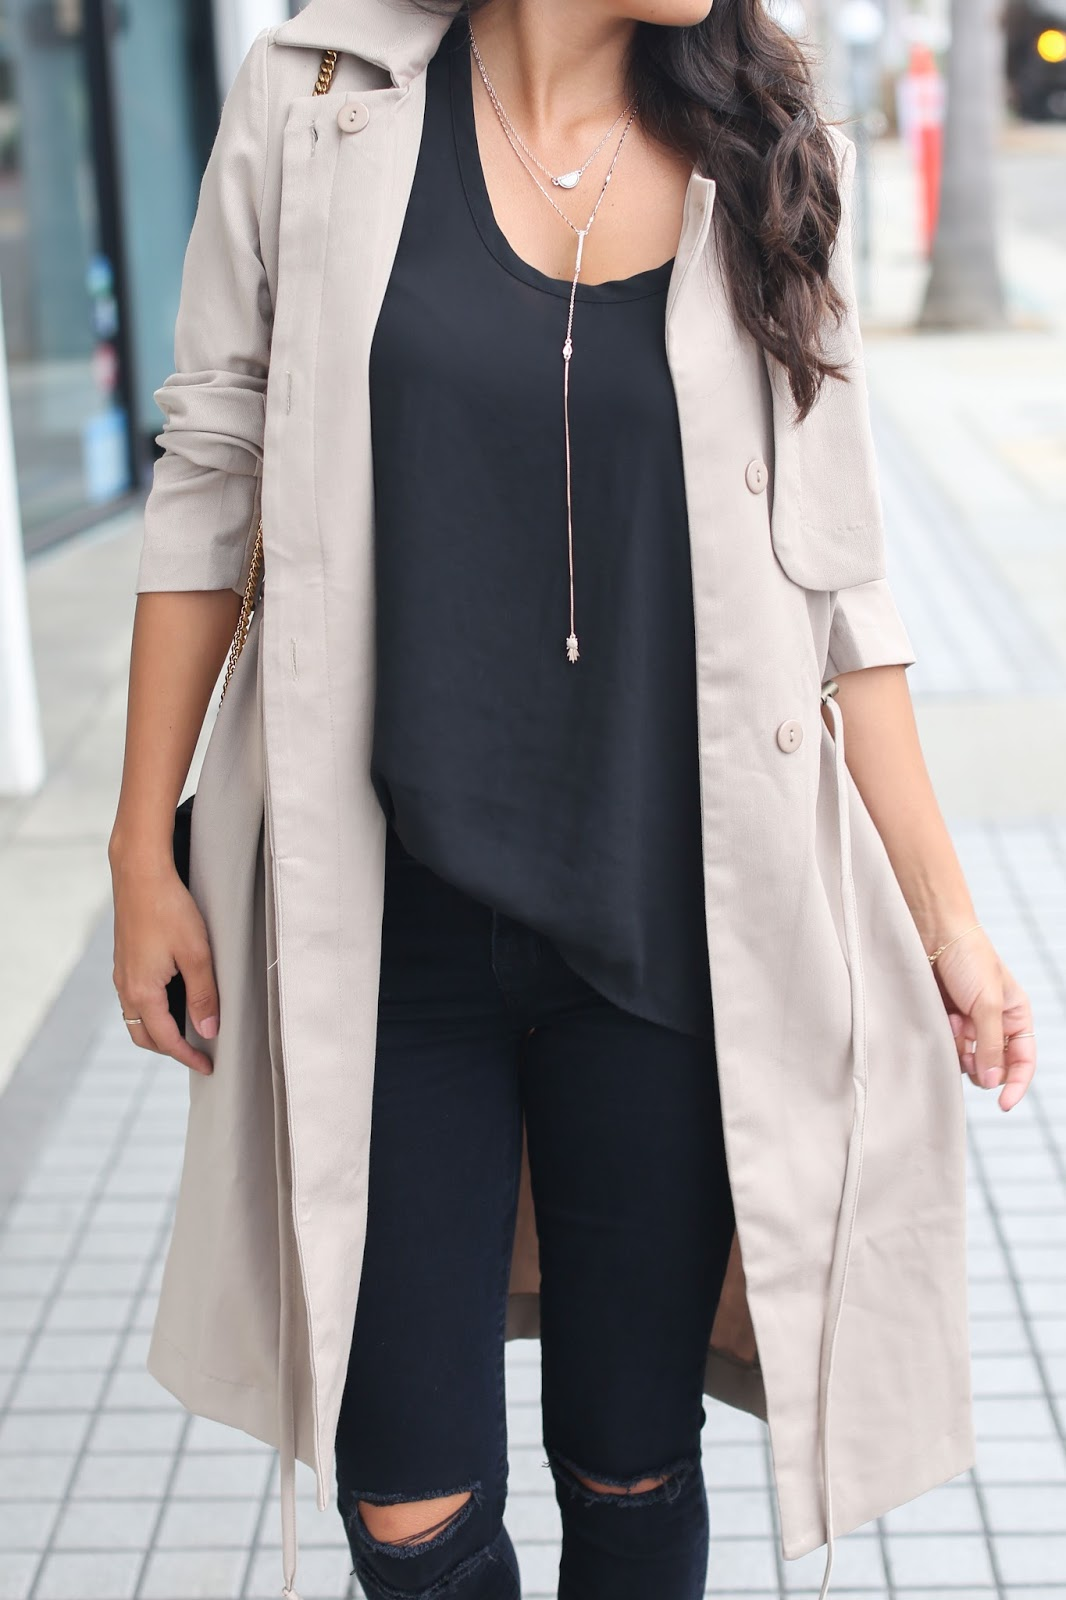 capwell necklace, fall fashion, justfab trench, how to style trench coat